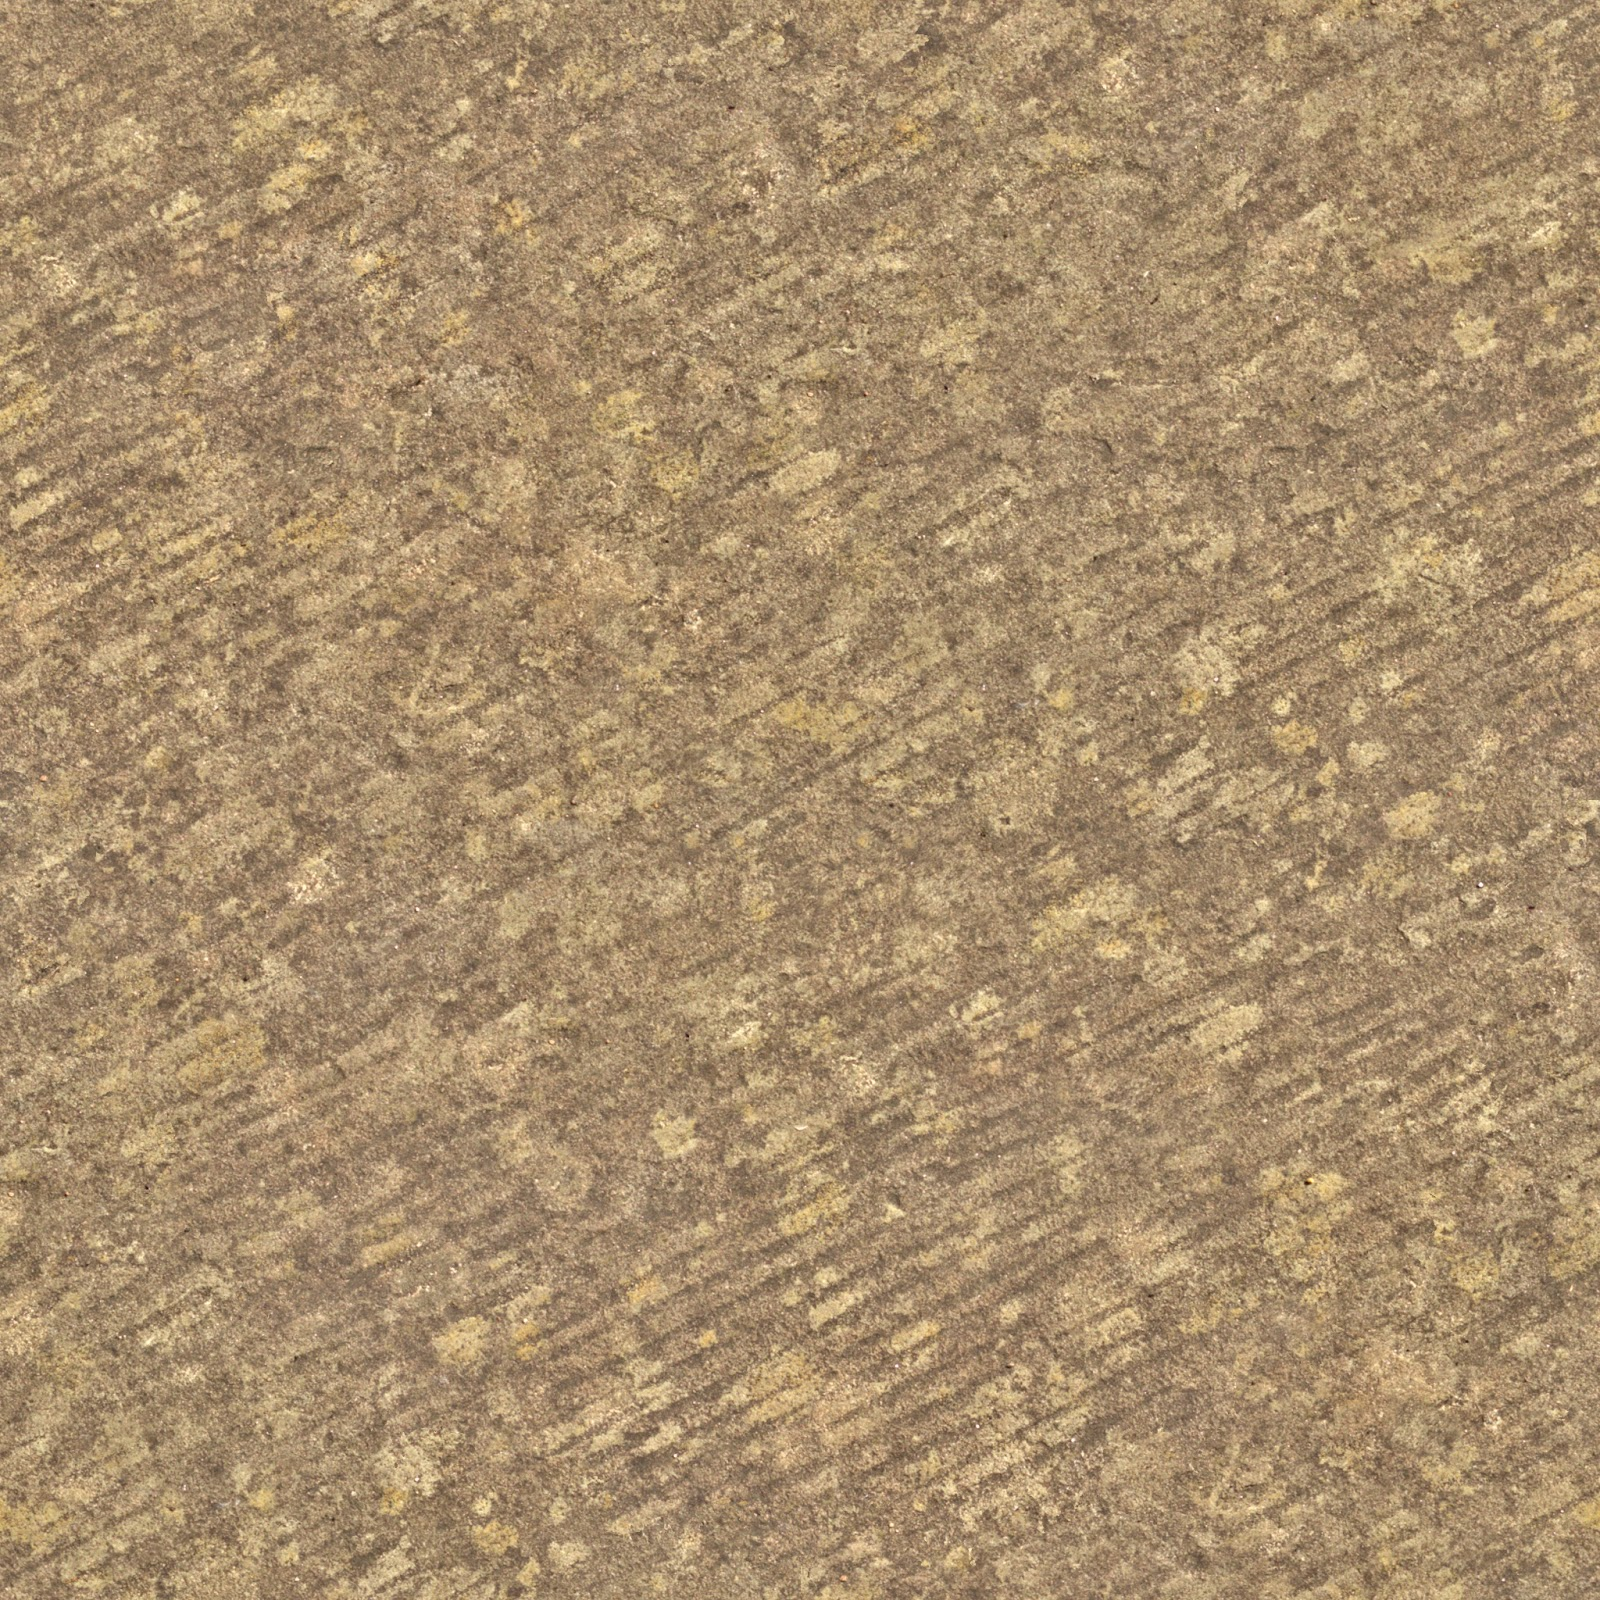 High Resolution Seamless Textures Stone 1 Rock Cave Mountain Brown Texture